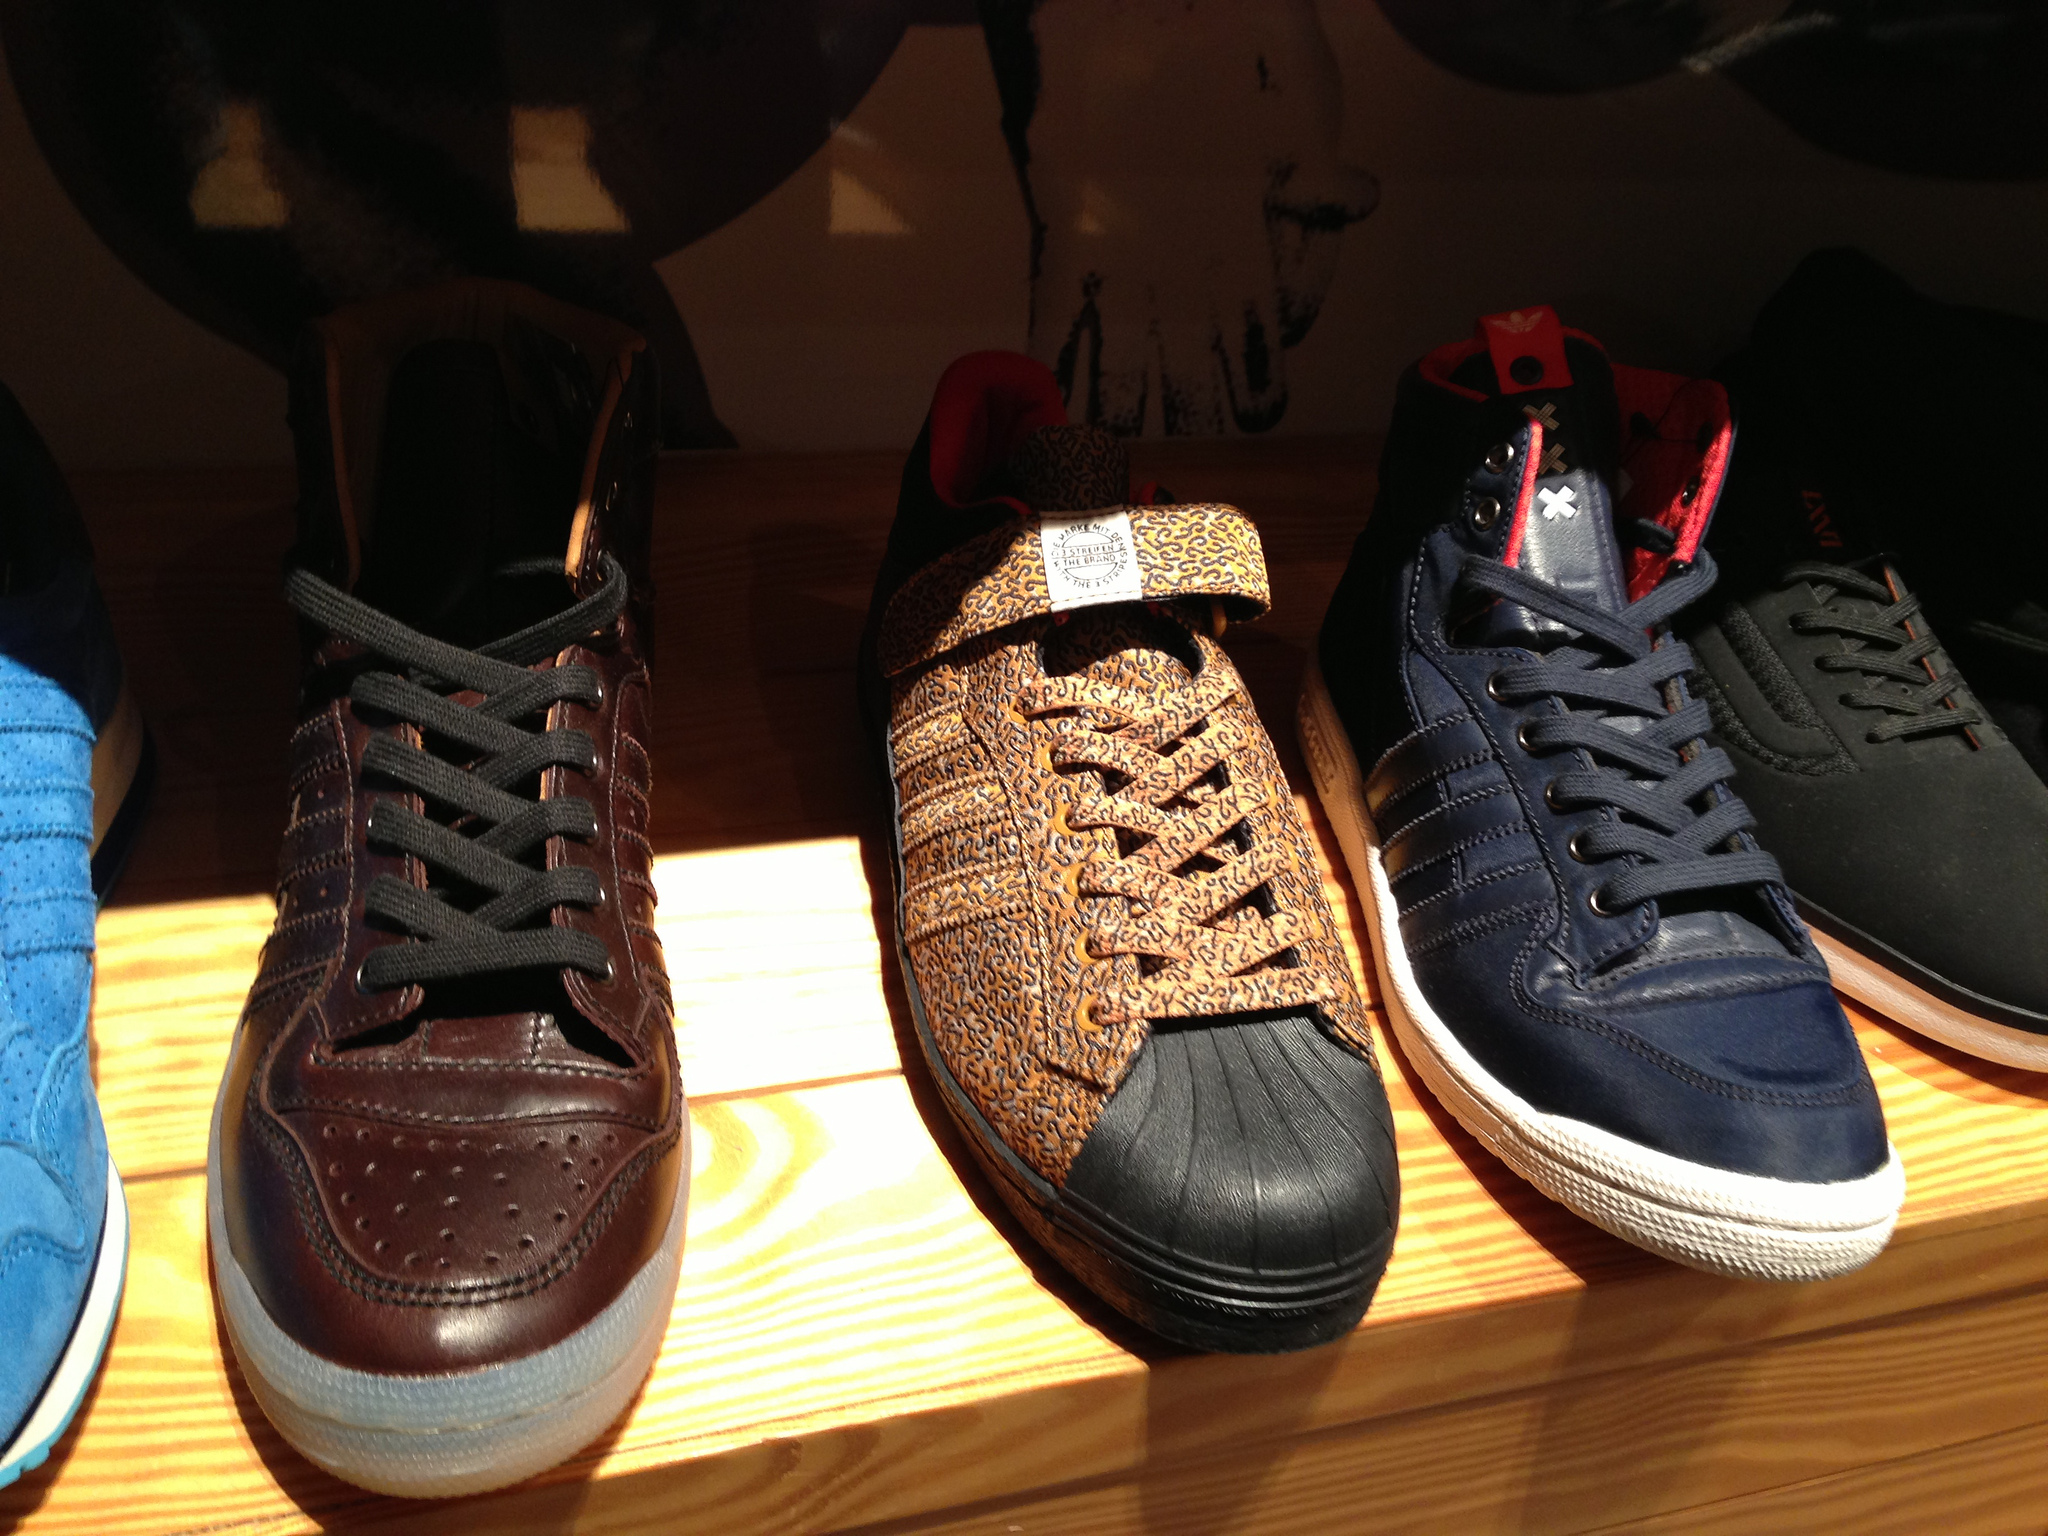 Limited edition sneakers at Undefeated in Tokyo. Photo by alphacityguides.